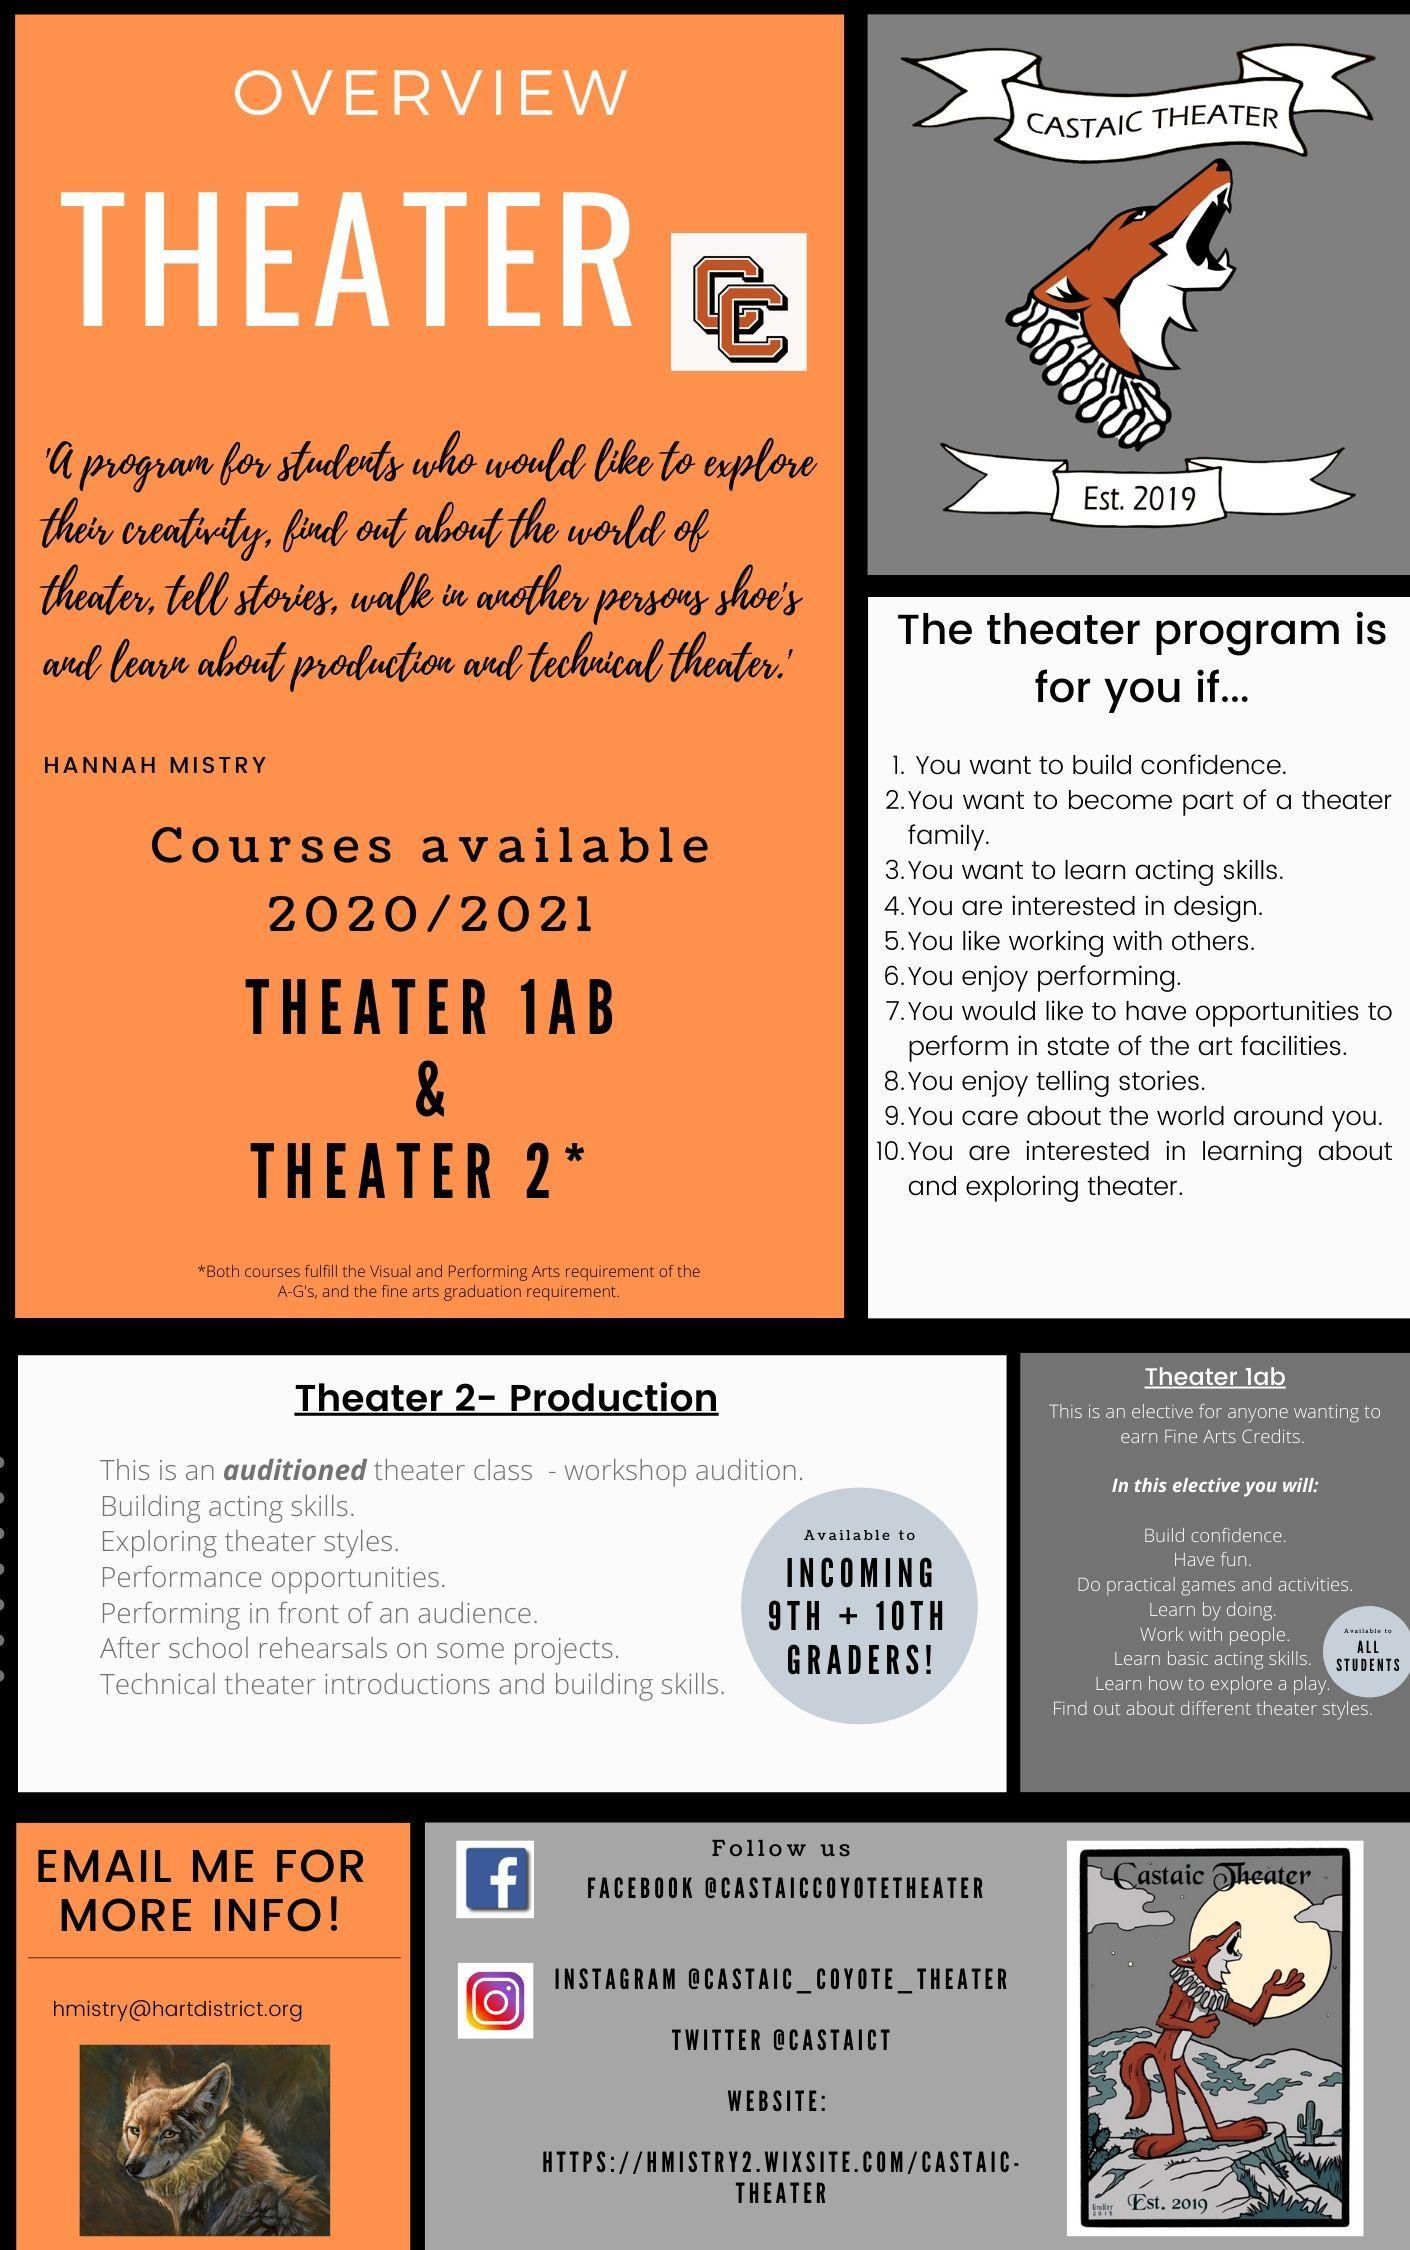 Theater Program Overview